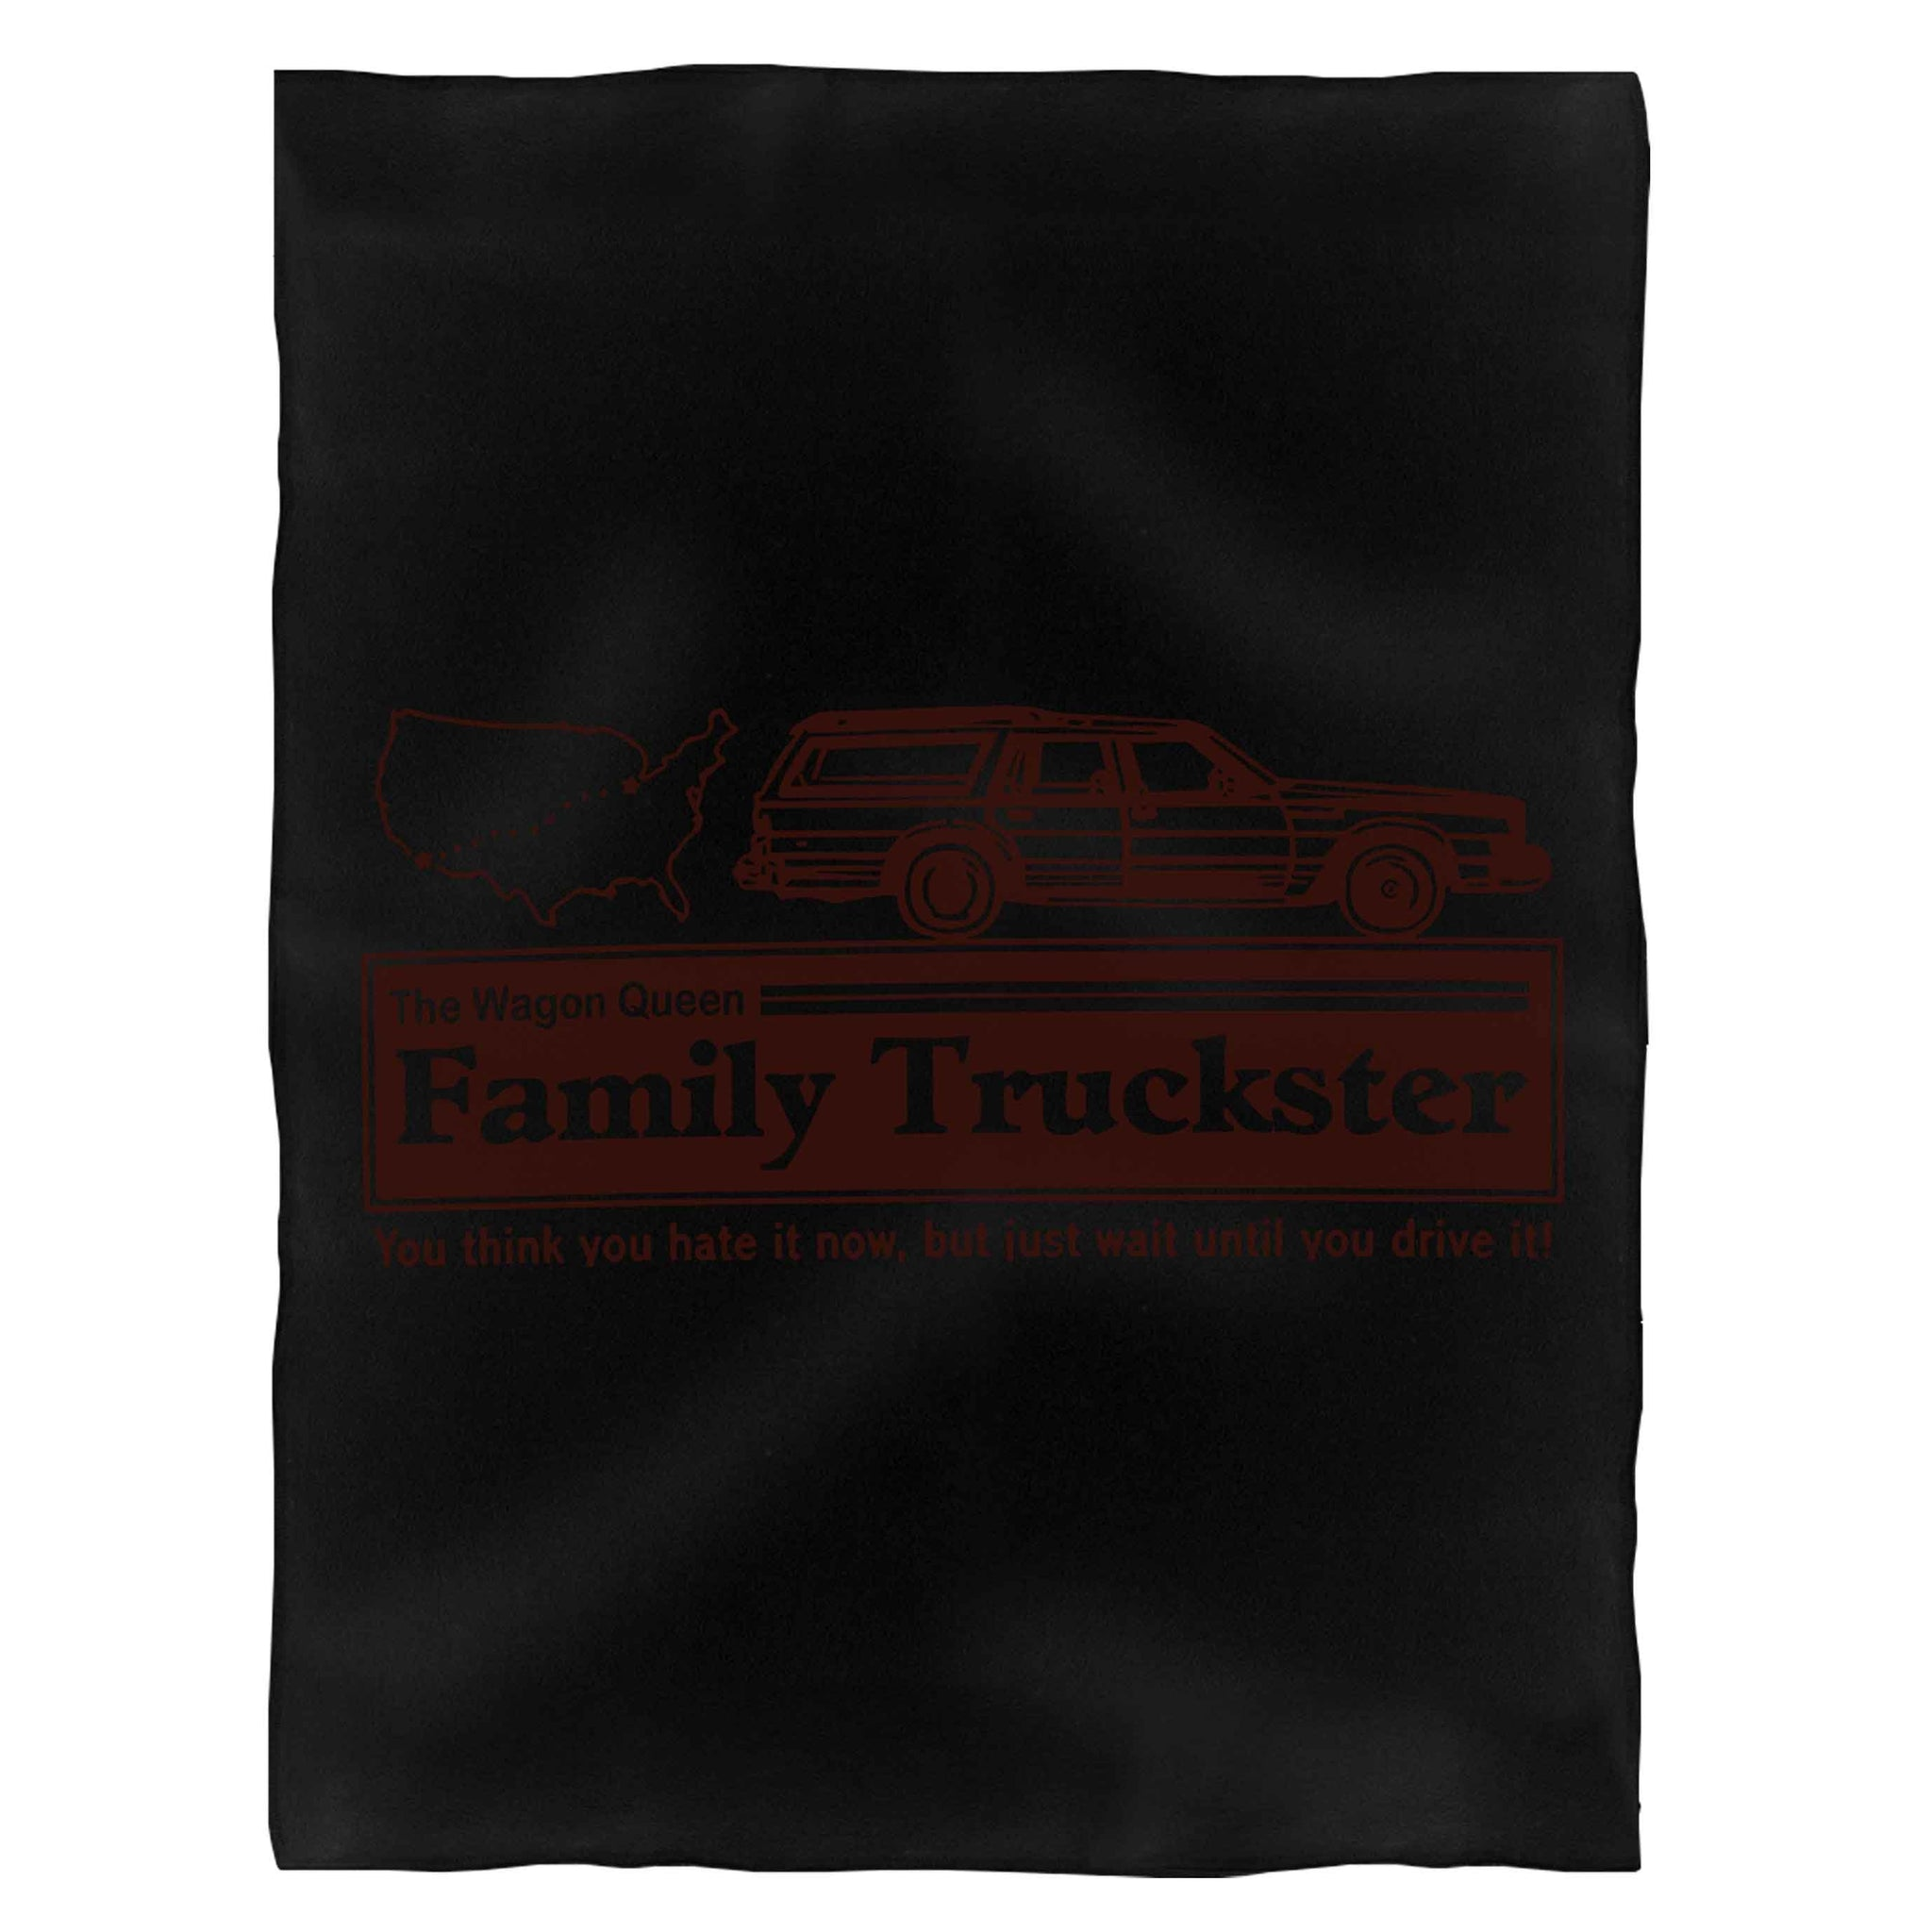 Clark W Griswold Wagon Queen Family Truckster Walley World National Lampoon'S Vacation Fleece Blanket